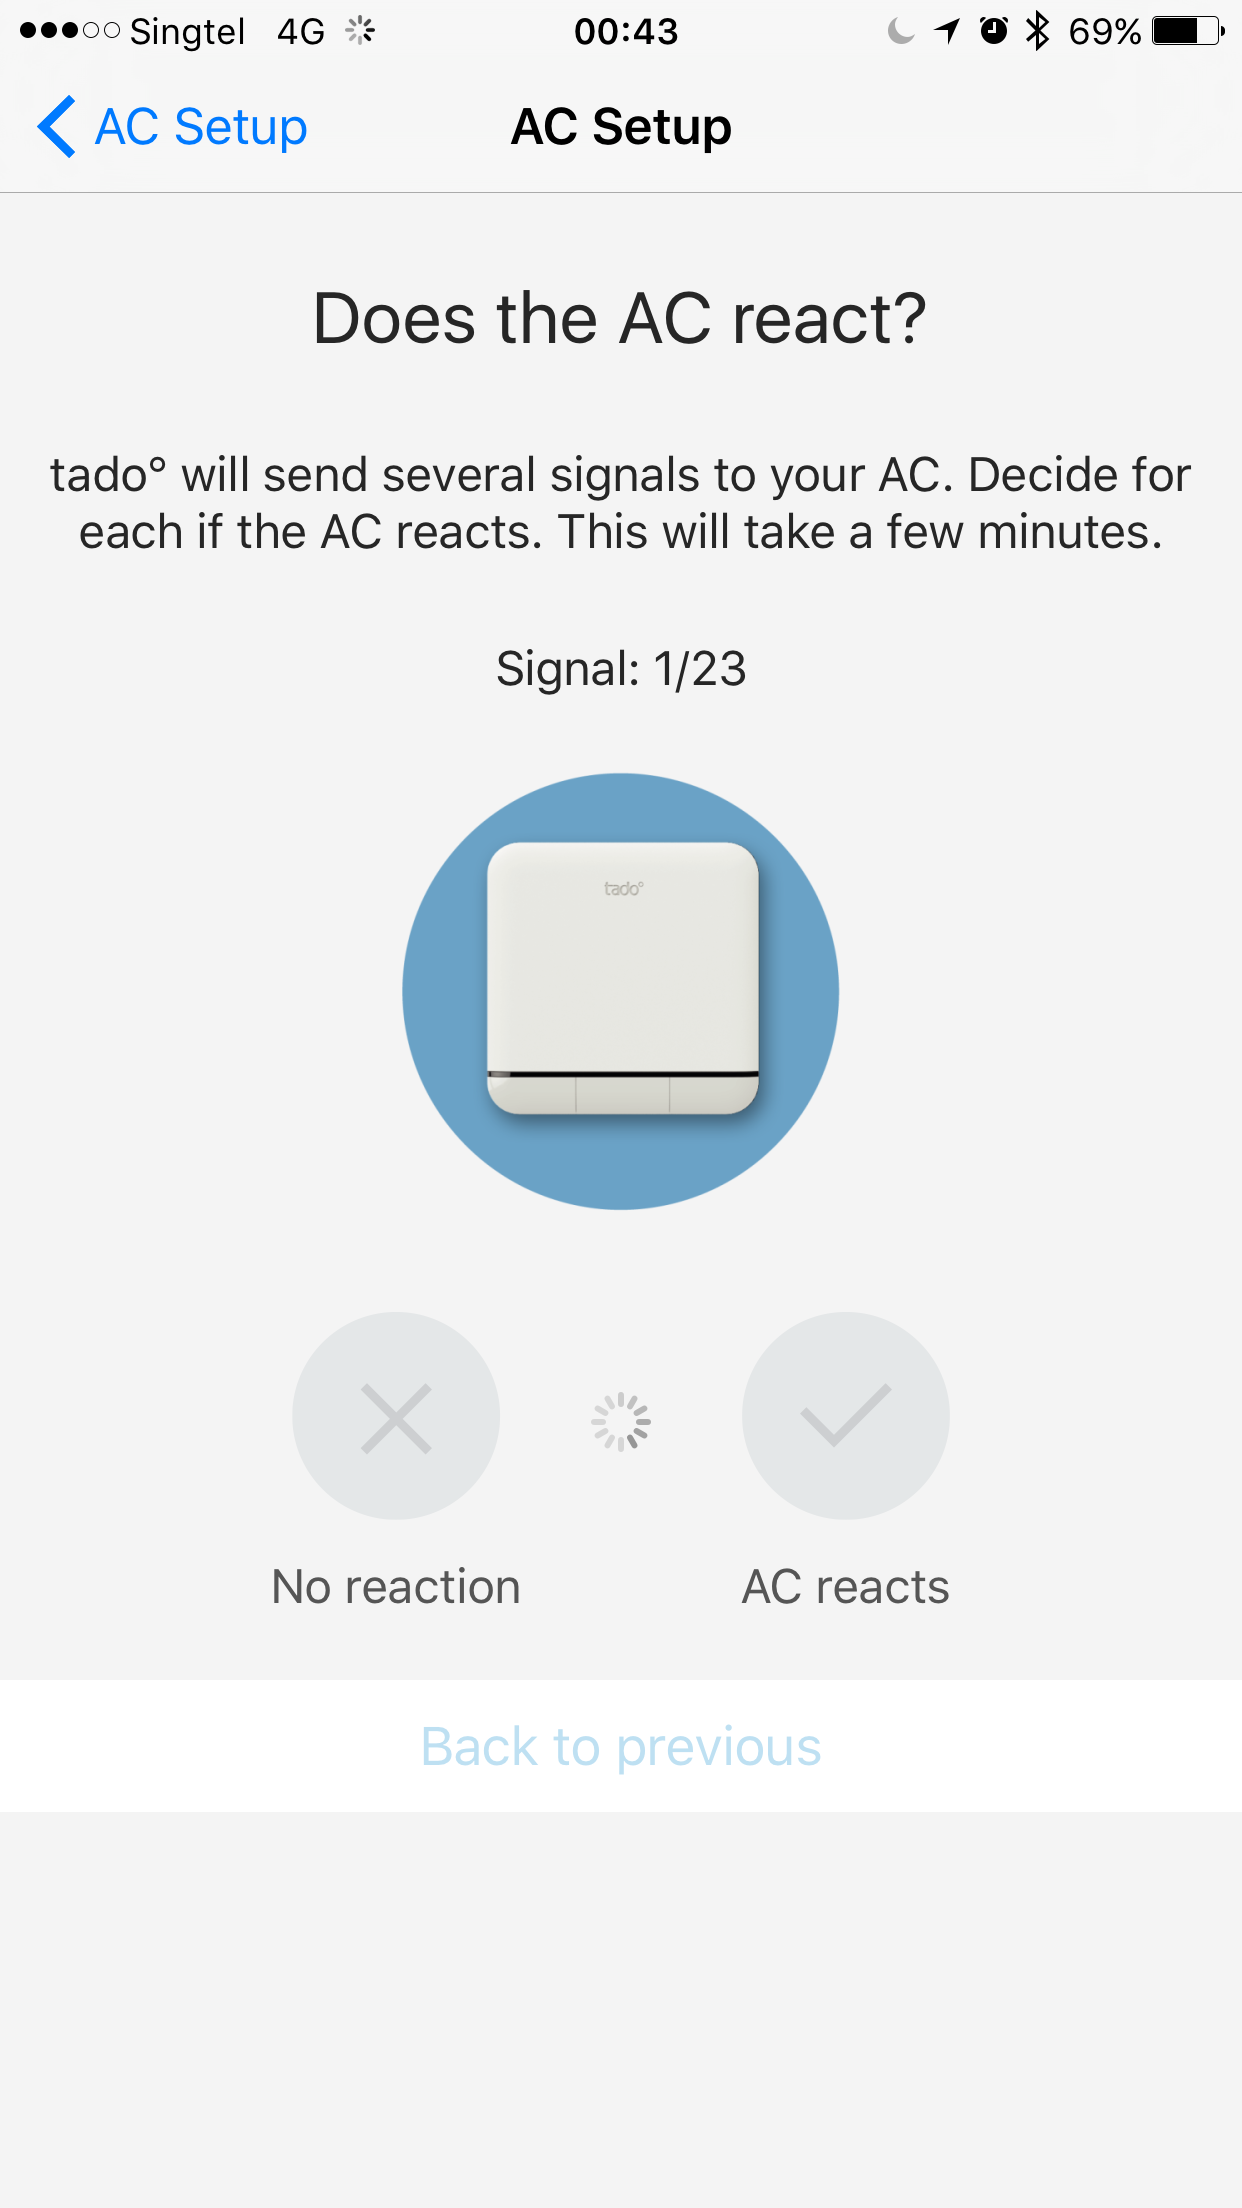 Tado Smart Ac Control Unboxing Setup Blog Wiring Diagram For Thermostat Ios App Command Signals Test 1